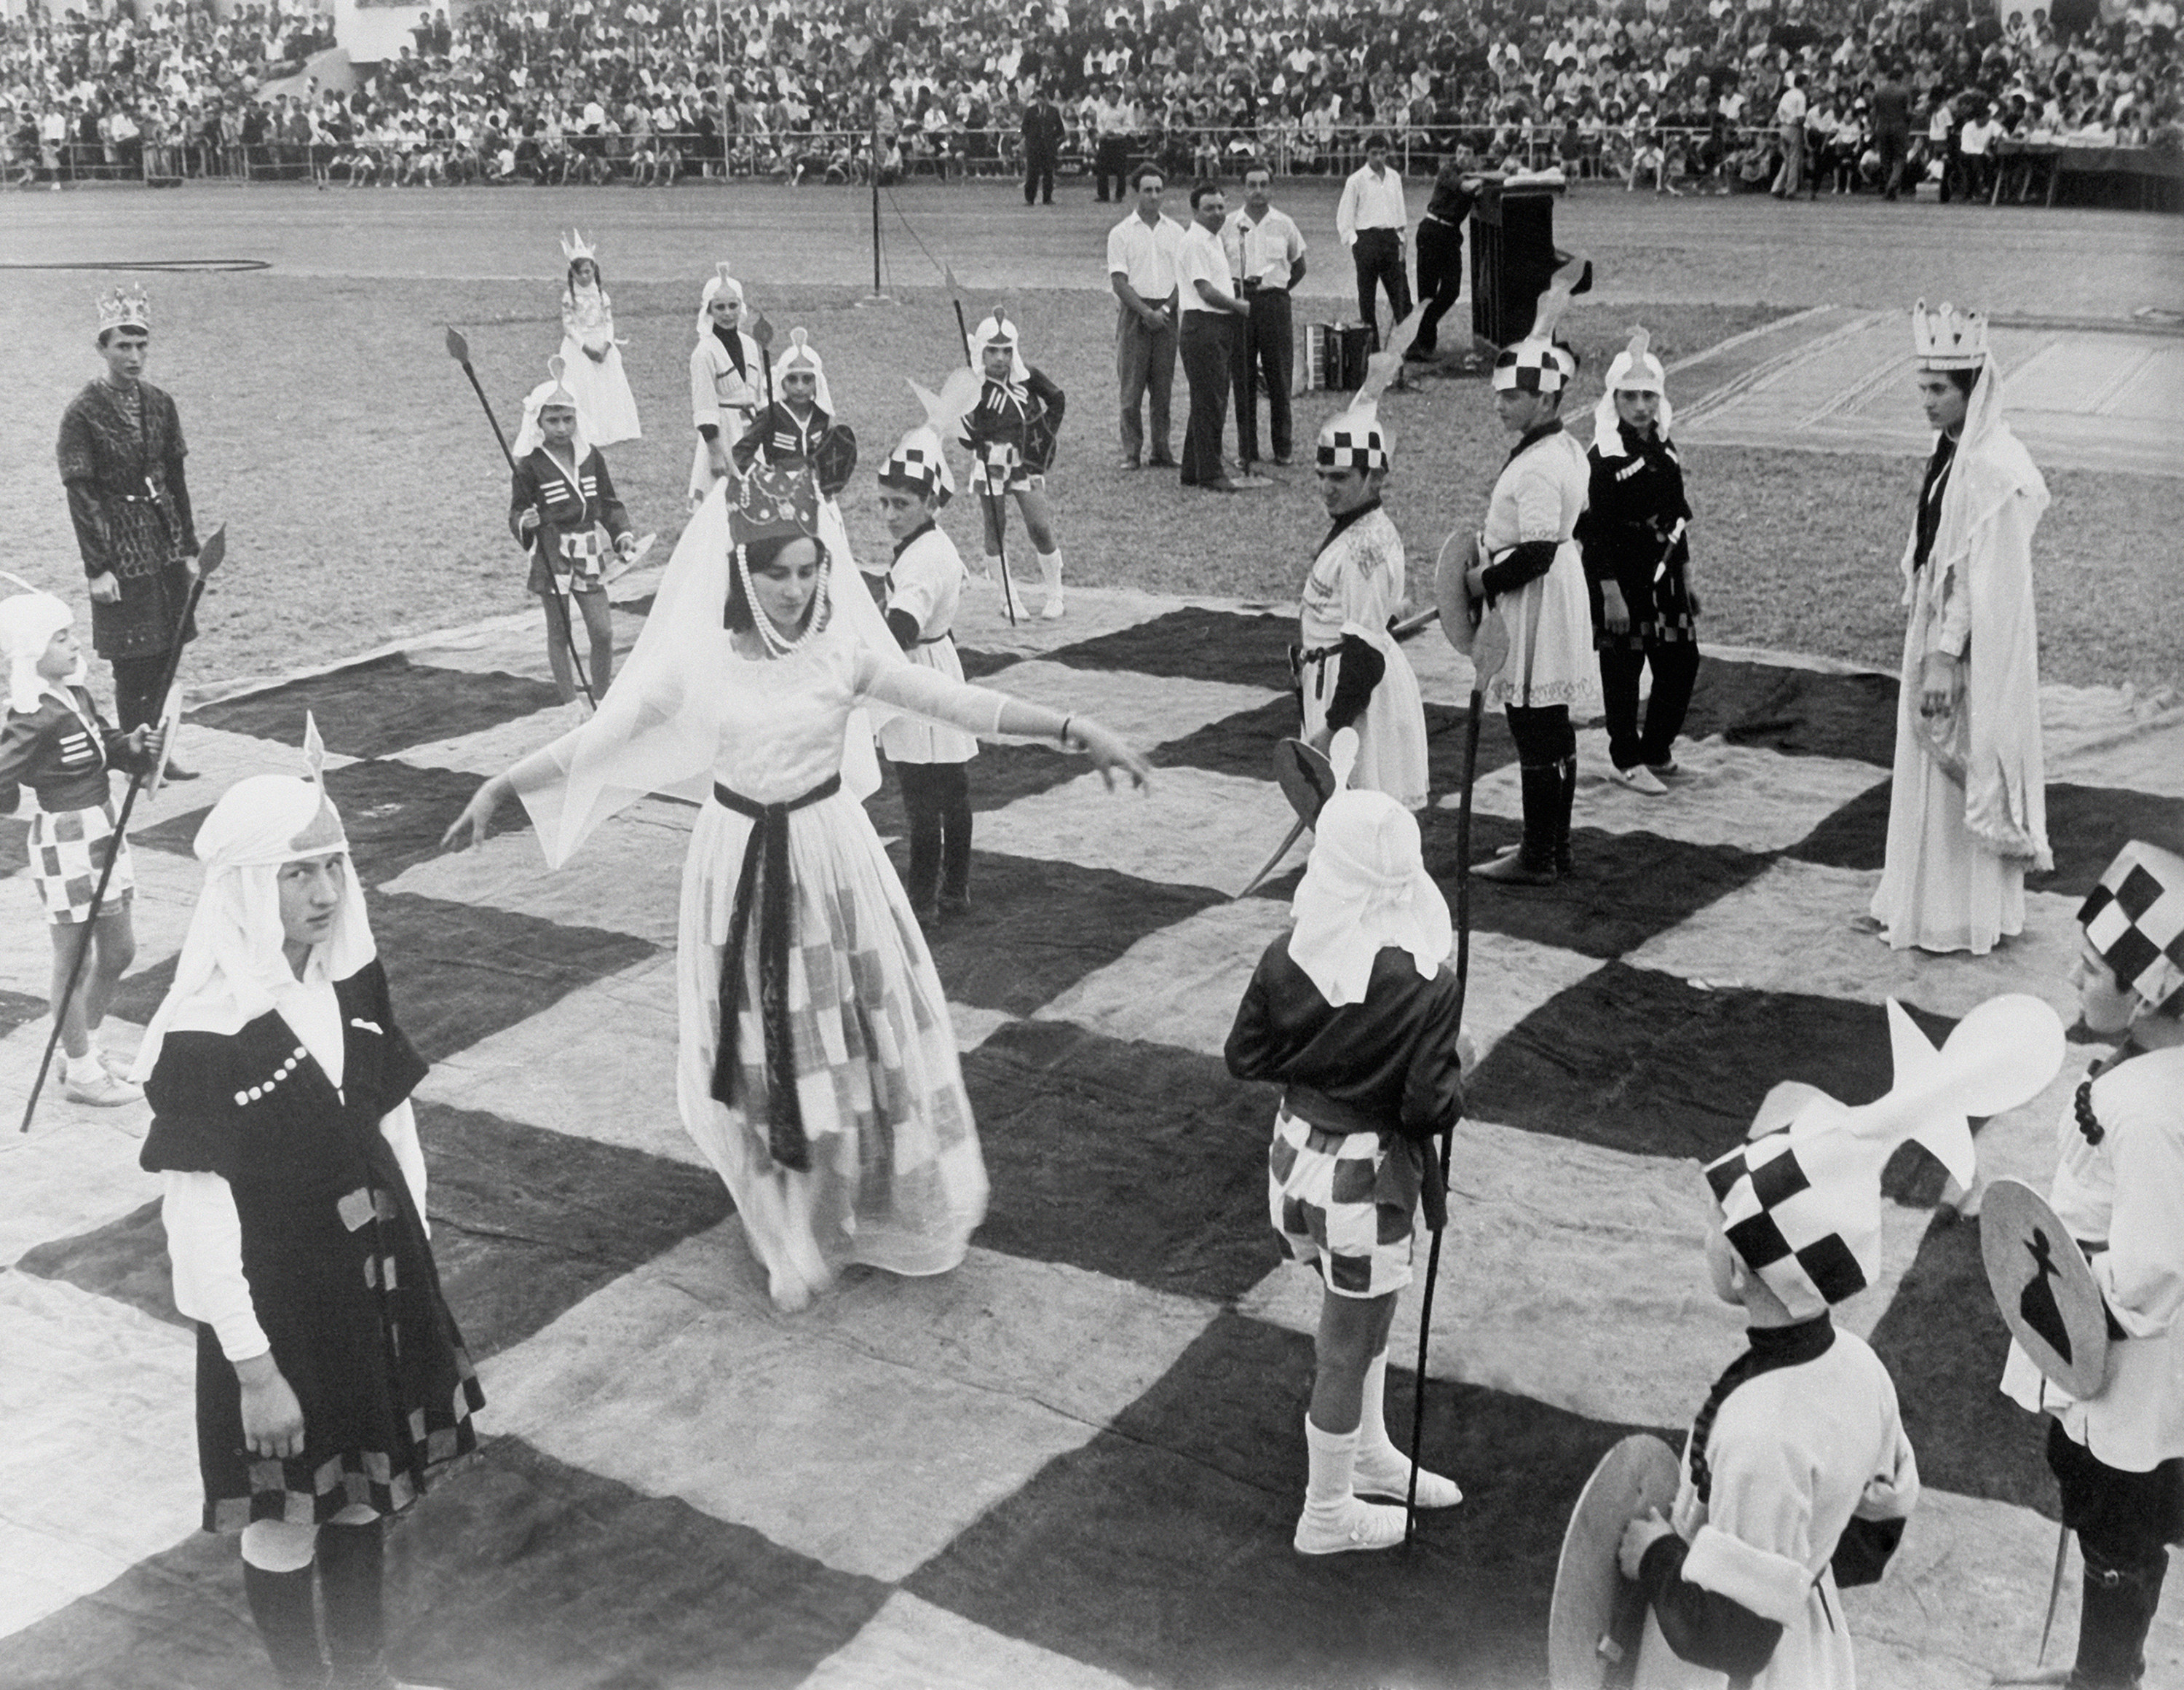 A woman dressed as a chess queen, with a crown and checkerboard dress, has her arms outstretched, standing on a giant chessboard and surrounded by other people dressed as pieces